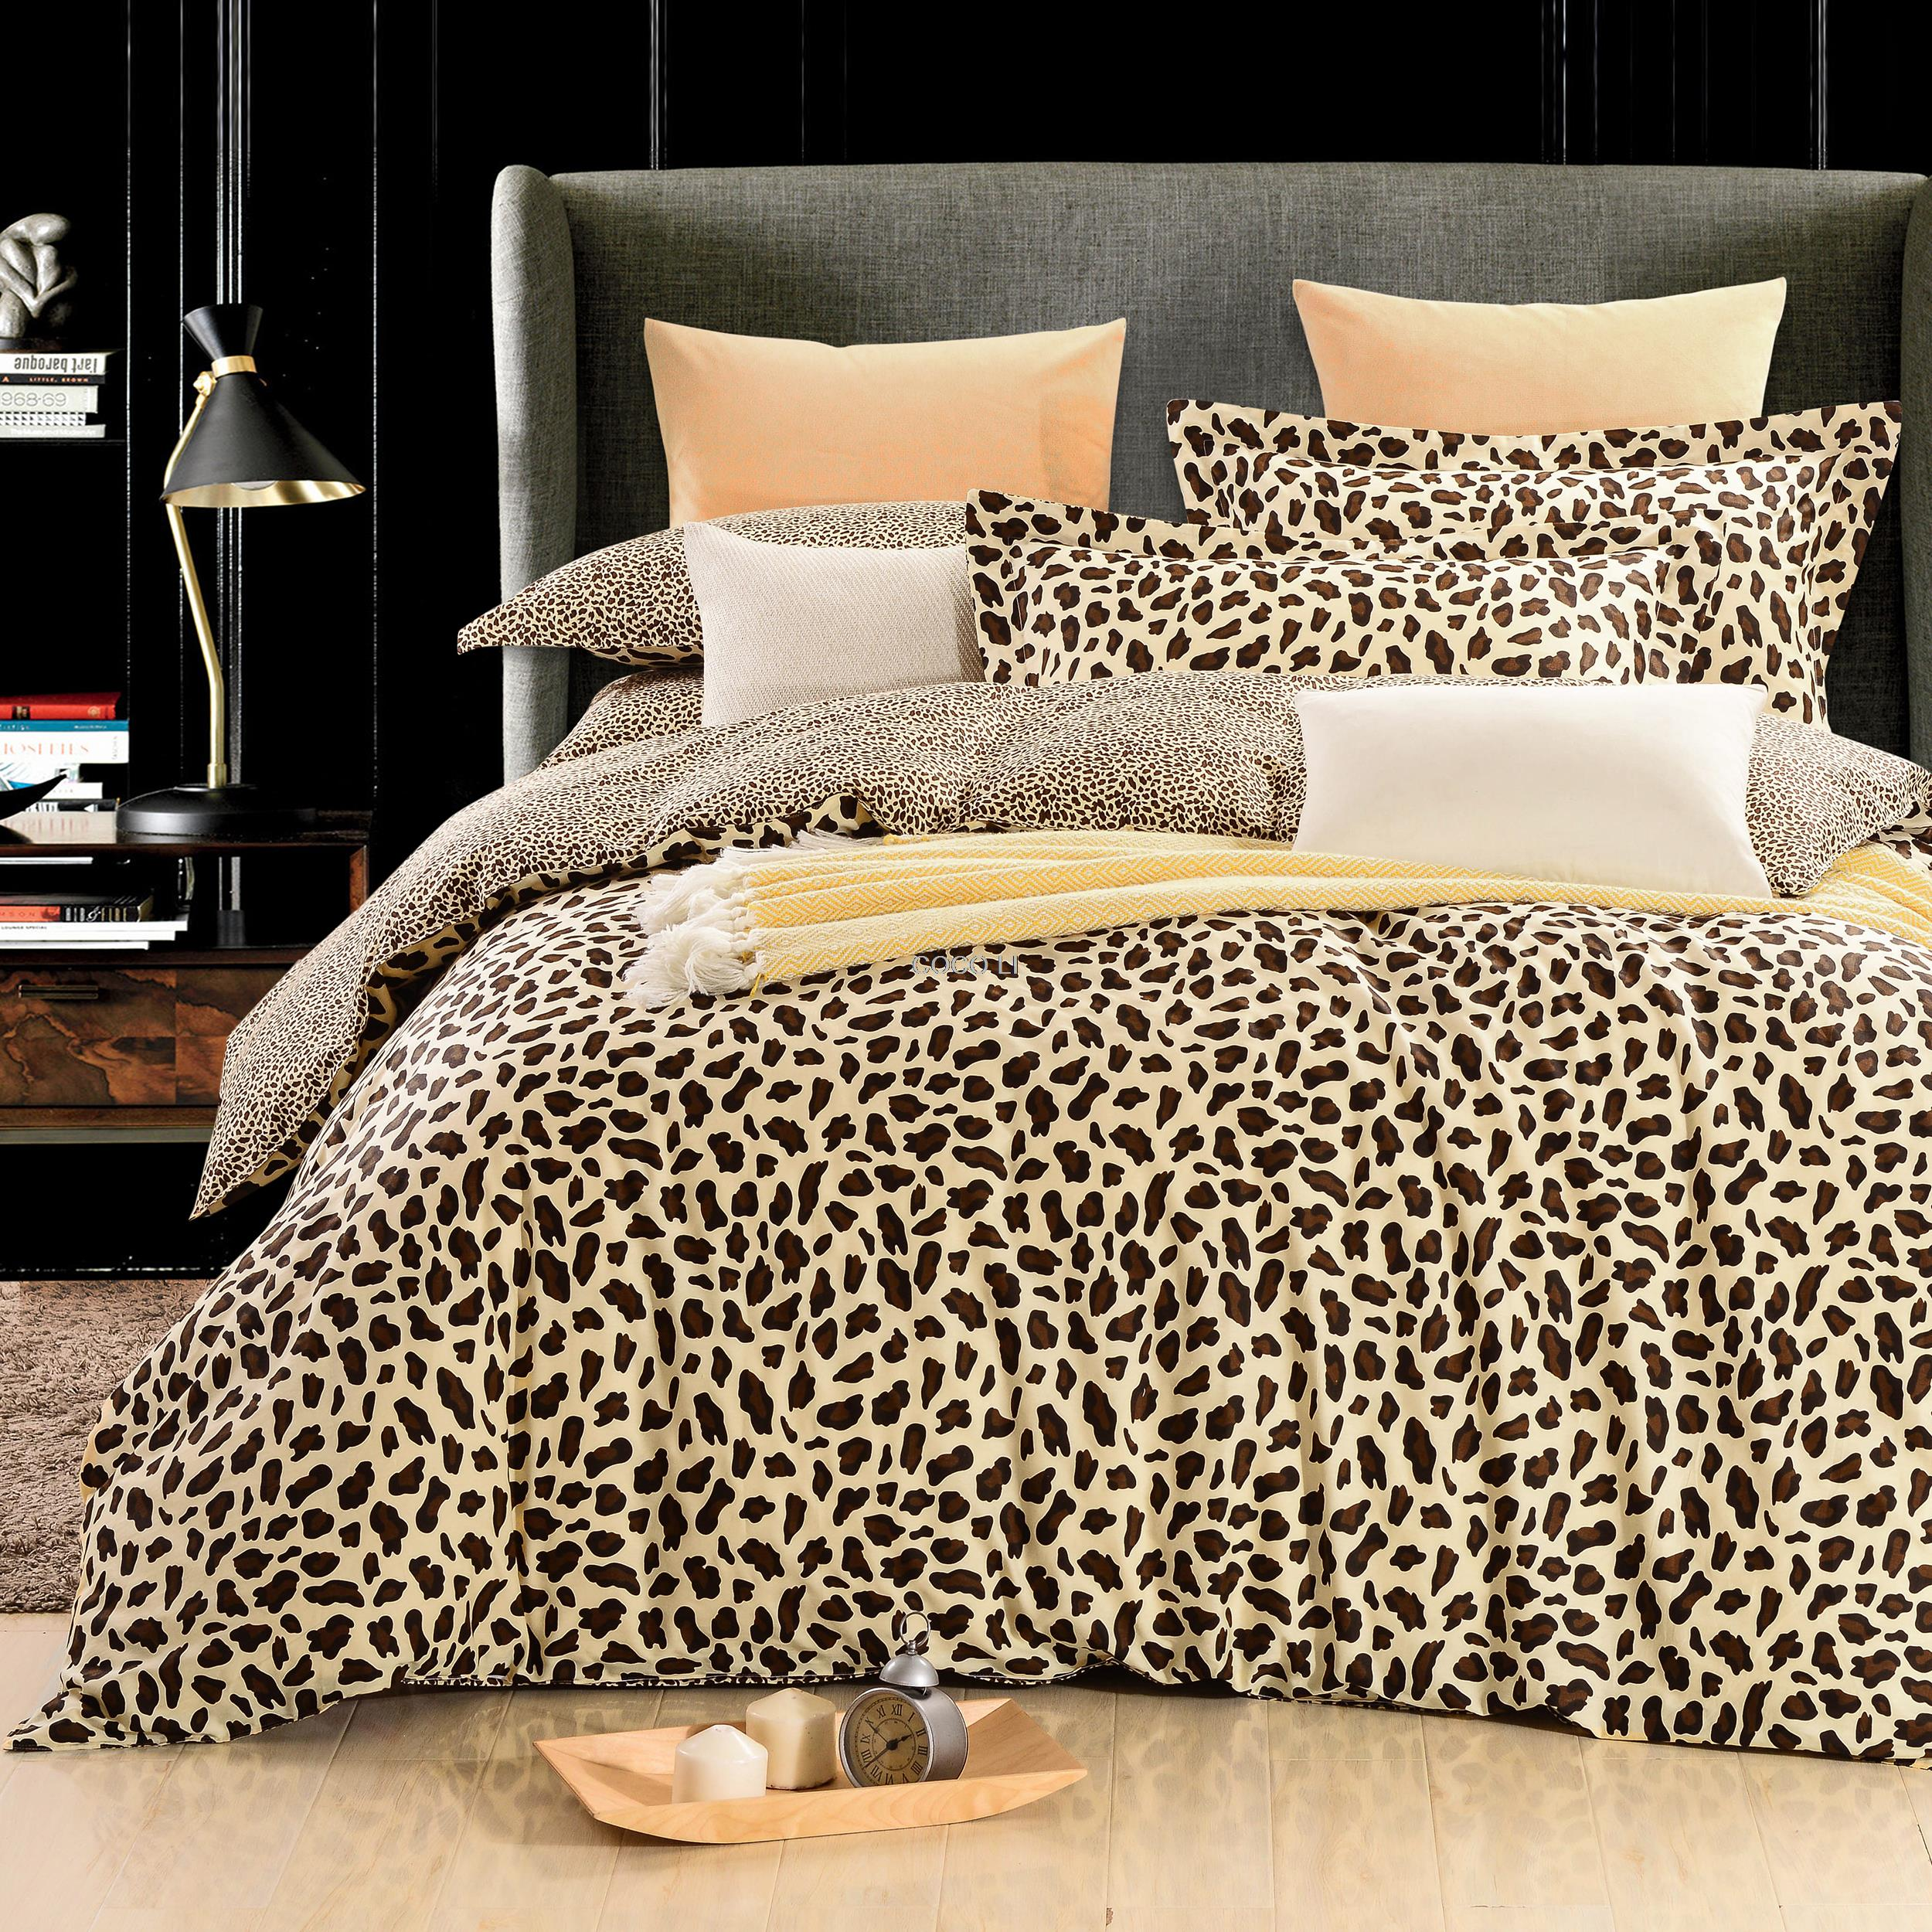 high quality nature duvet covers promotionshop for high quality  - keluo  natural cotton beige leopard duvet cover set king twin queensize include one duvet cover two pillowcase pcs